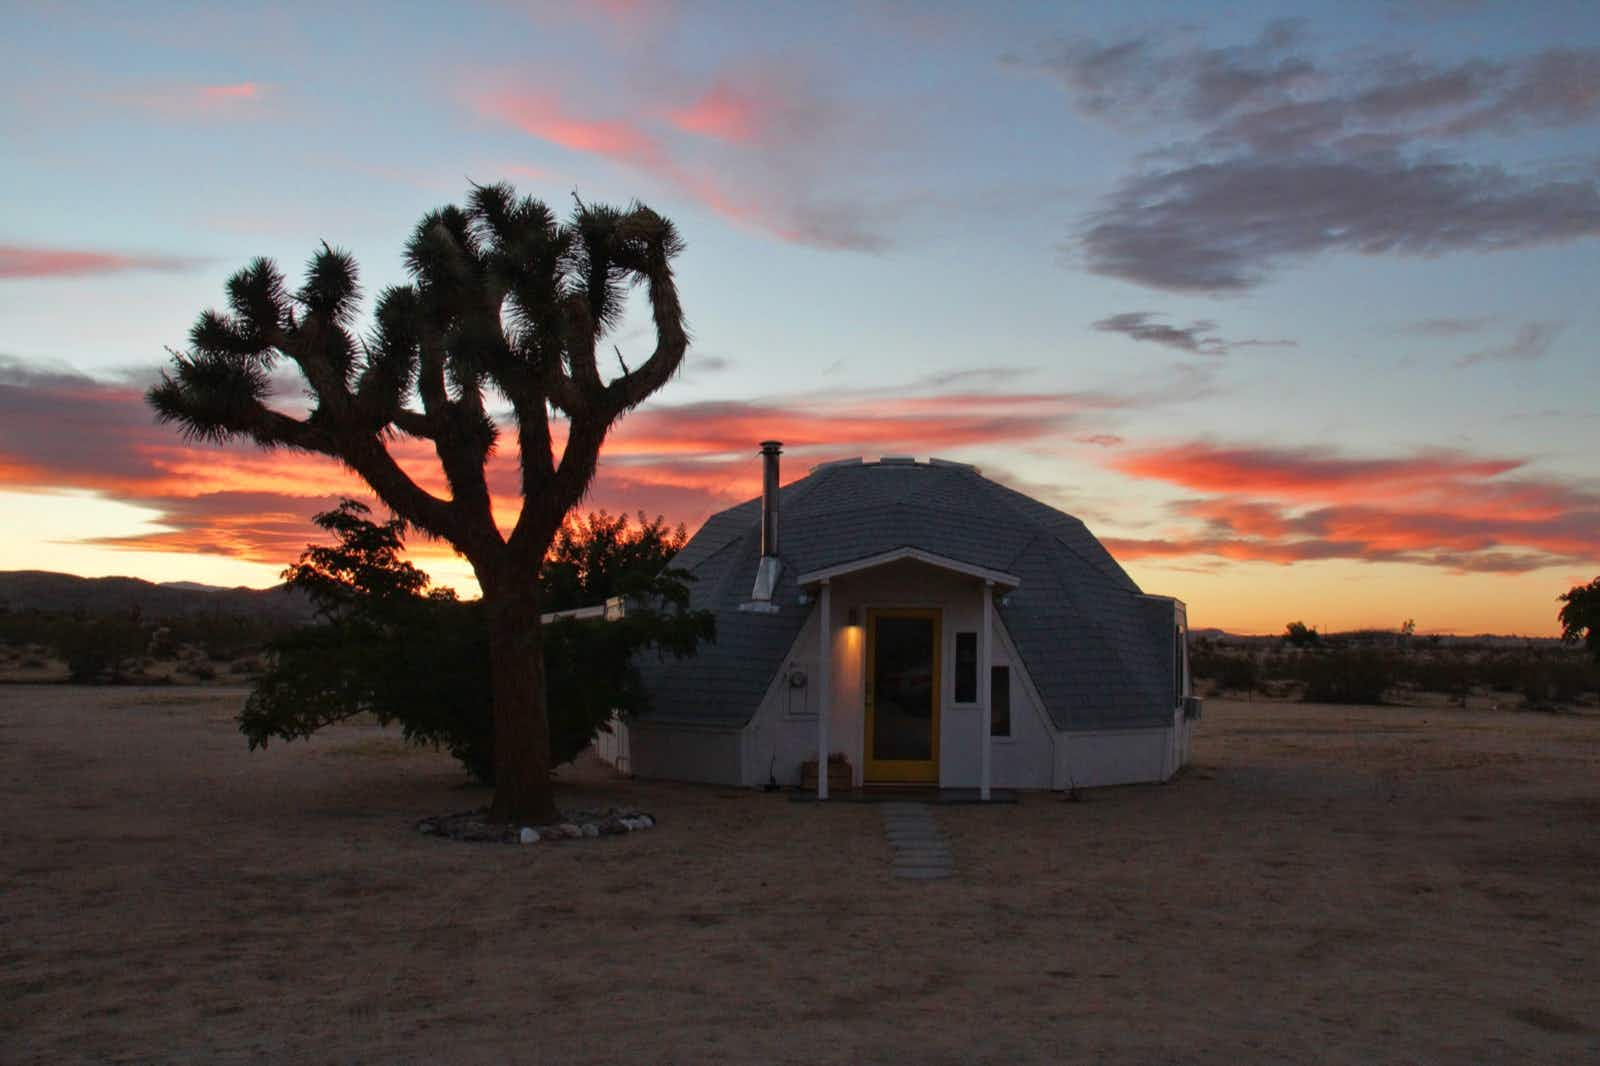 A geo-dome house in a desert next to a Joshua Tree